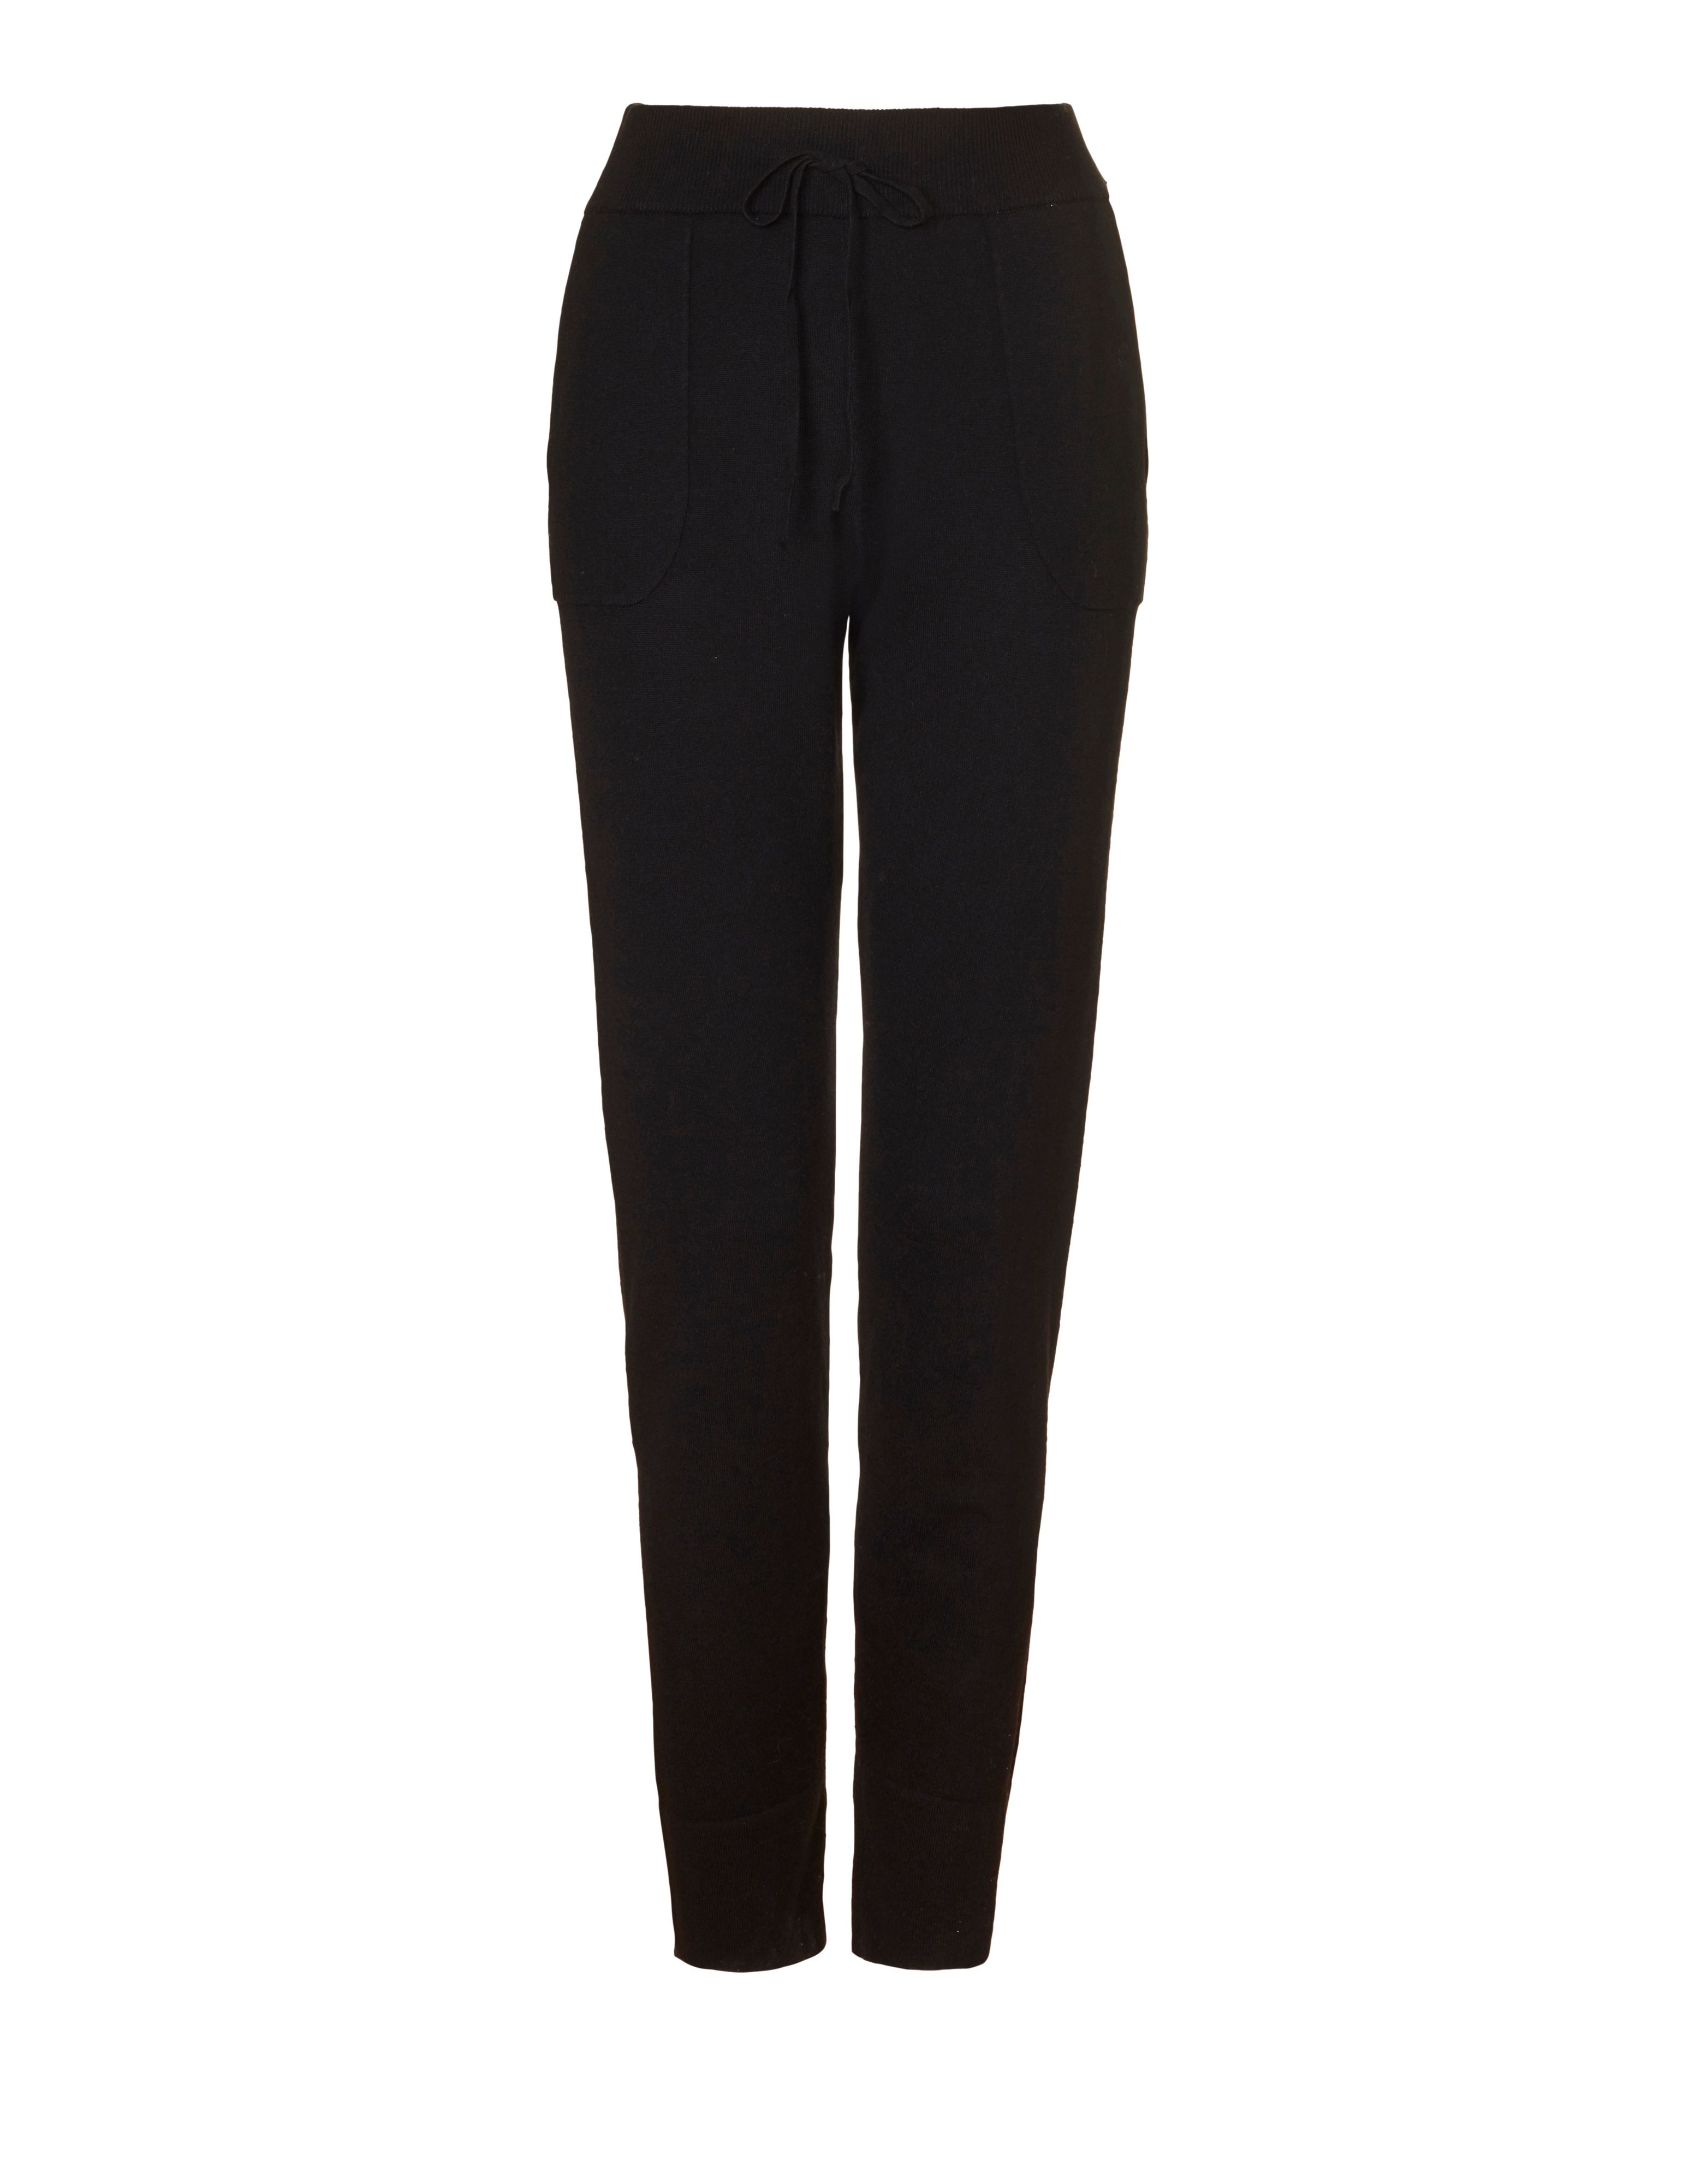 Winser London Casual Luxe Lounge Pants, Black